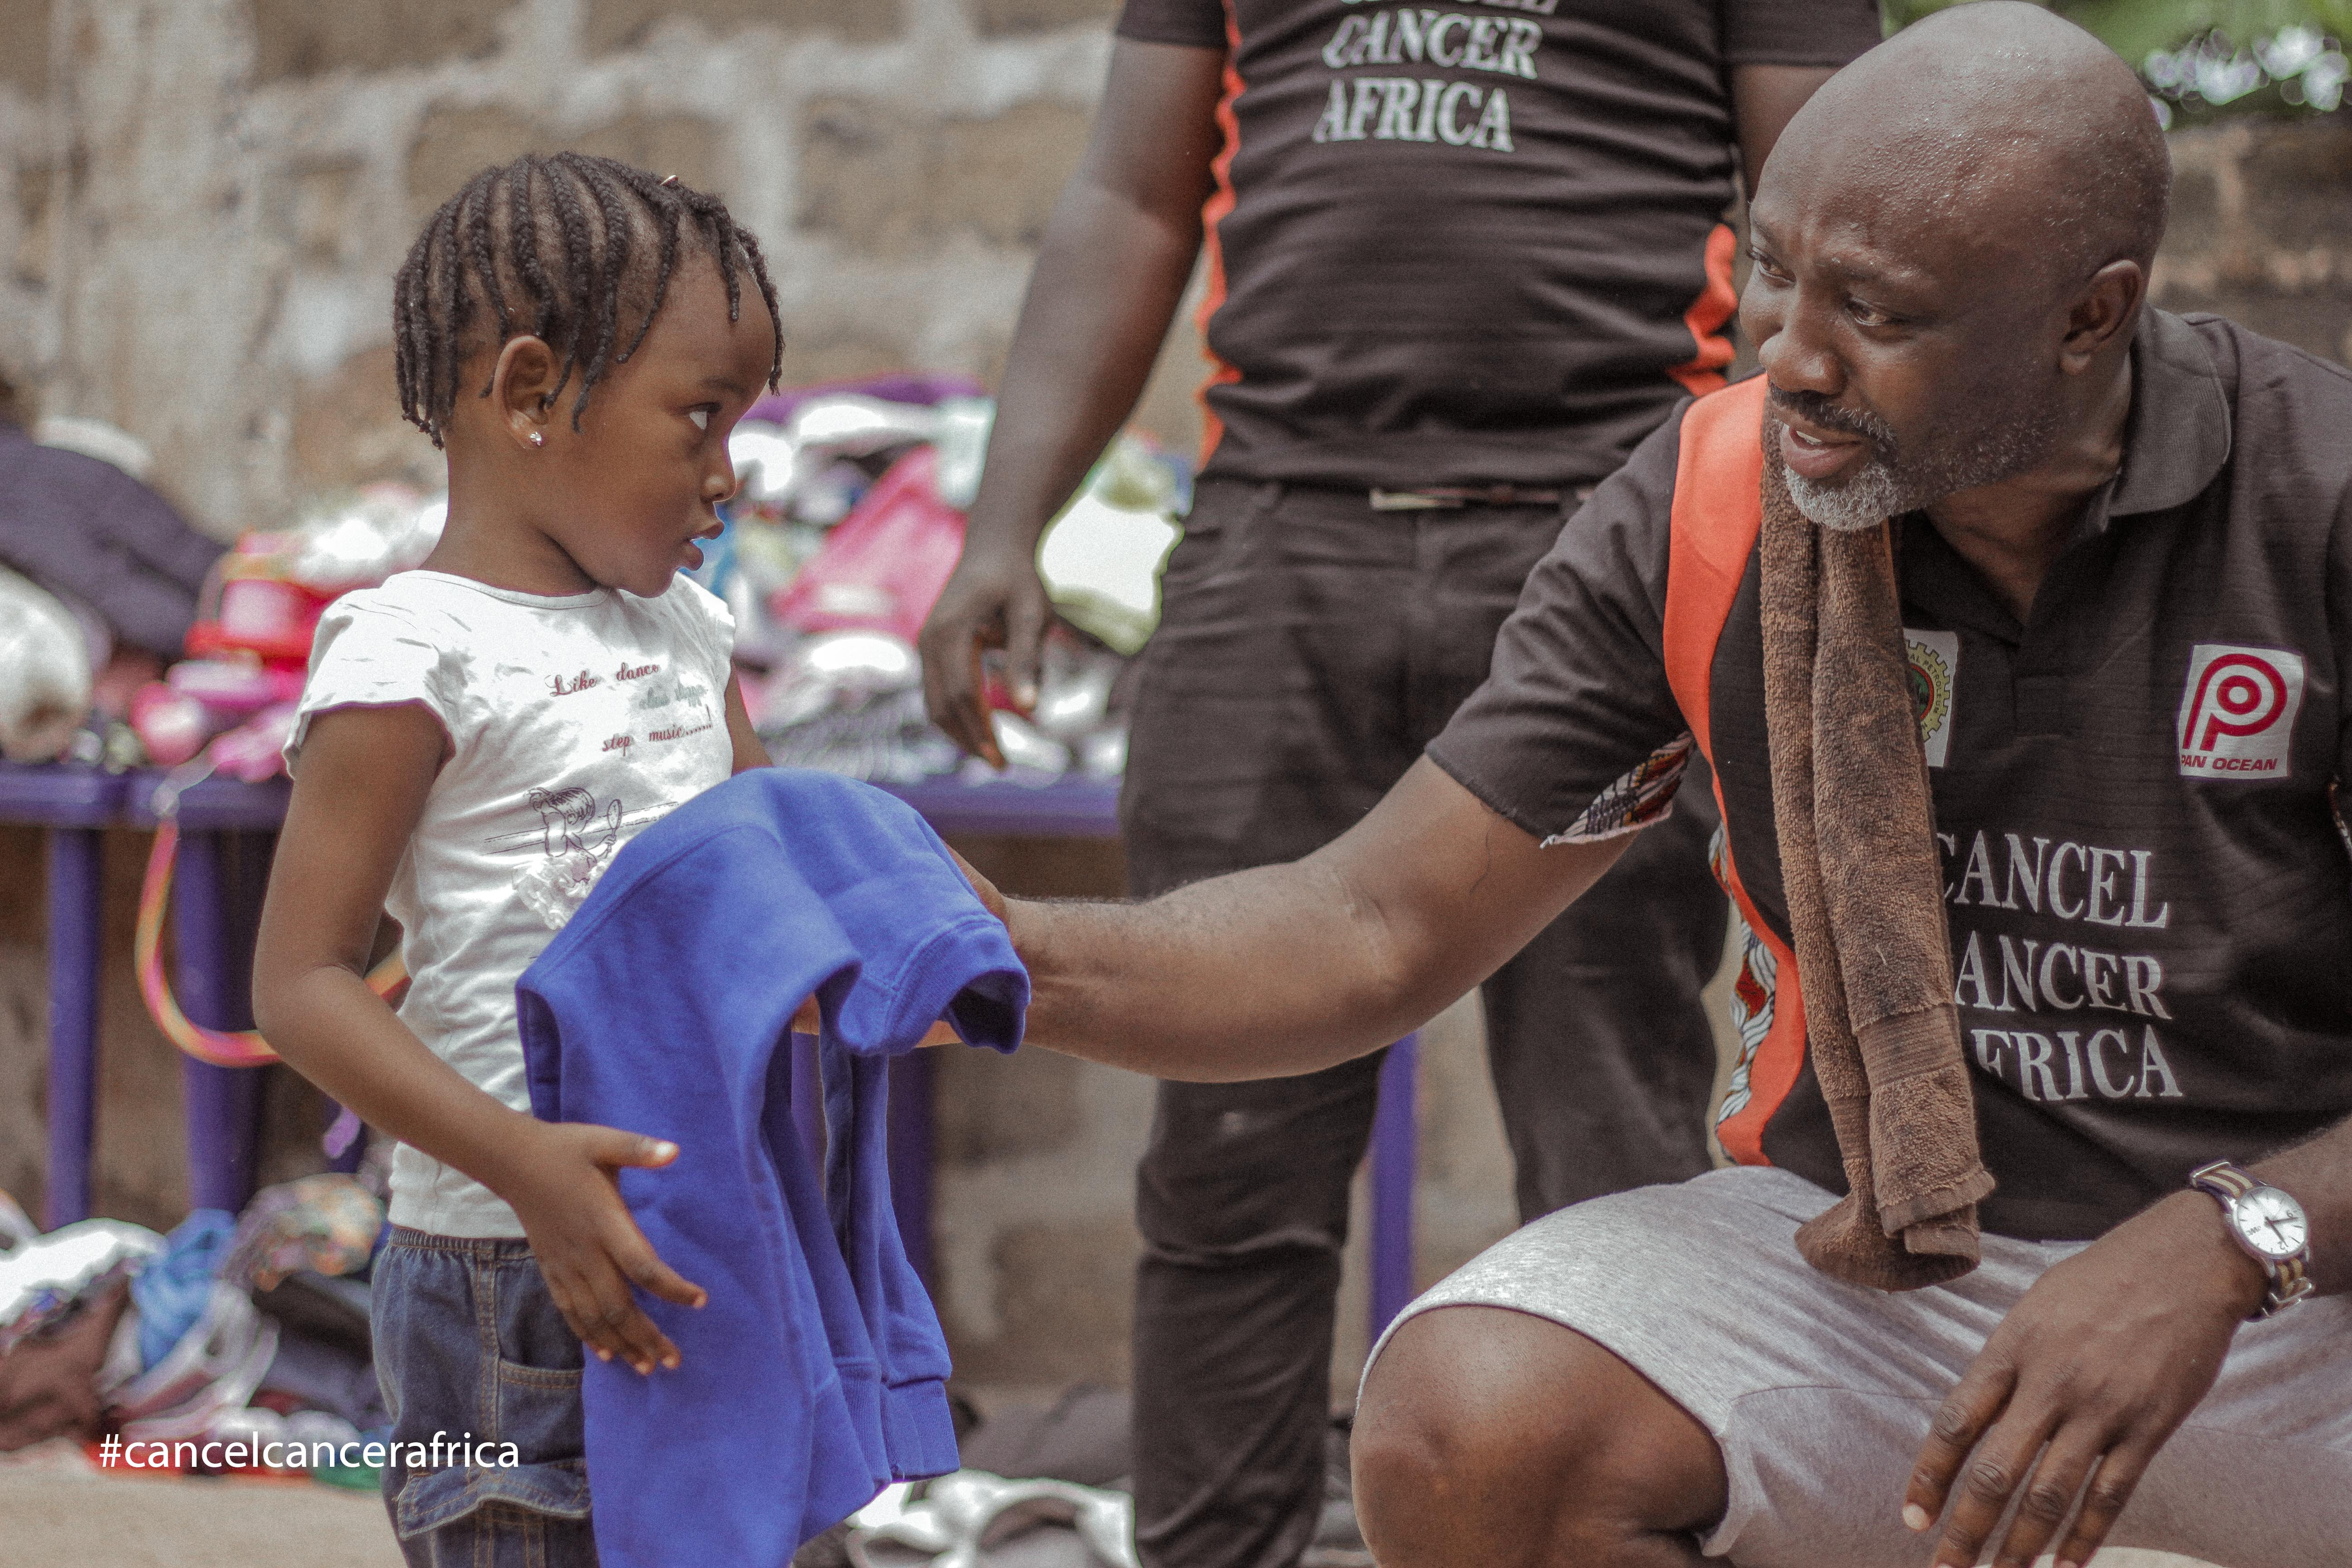 Sharing Gift items in rural Nigeria  - Cancel Cancer Africa